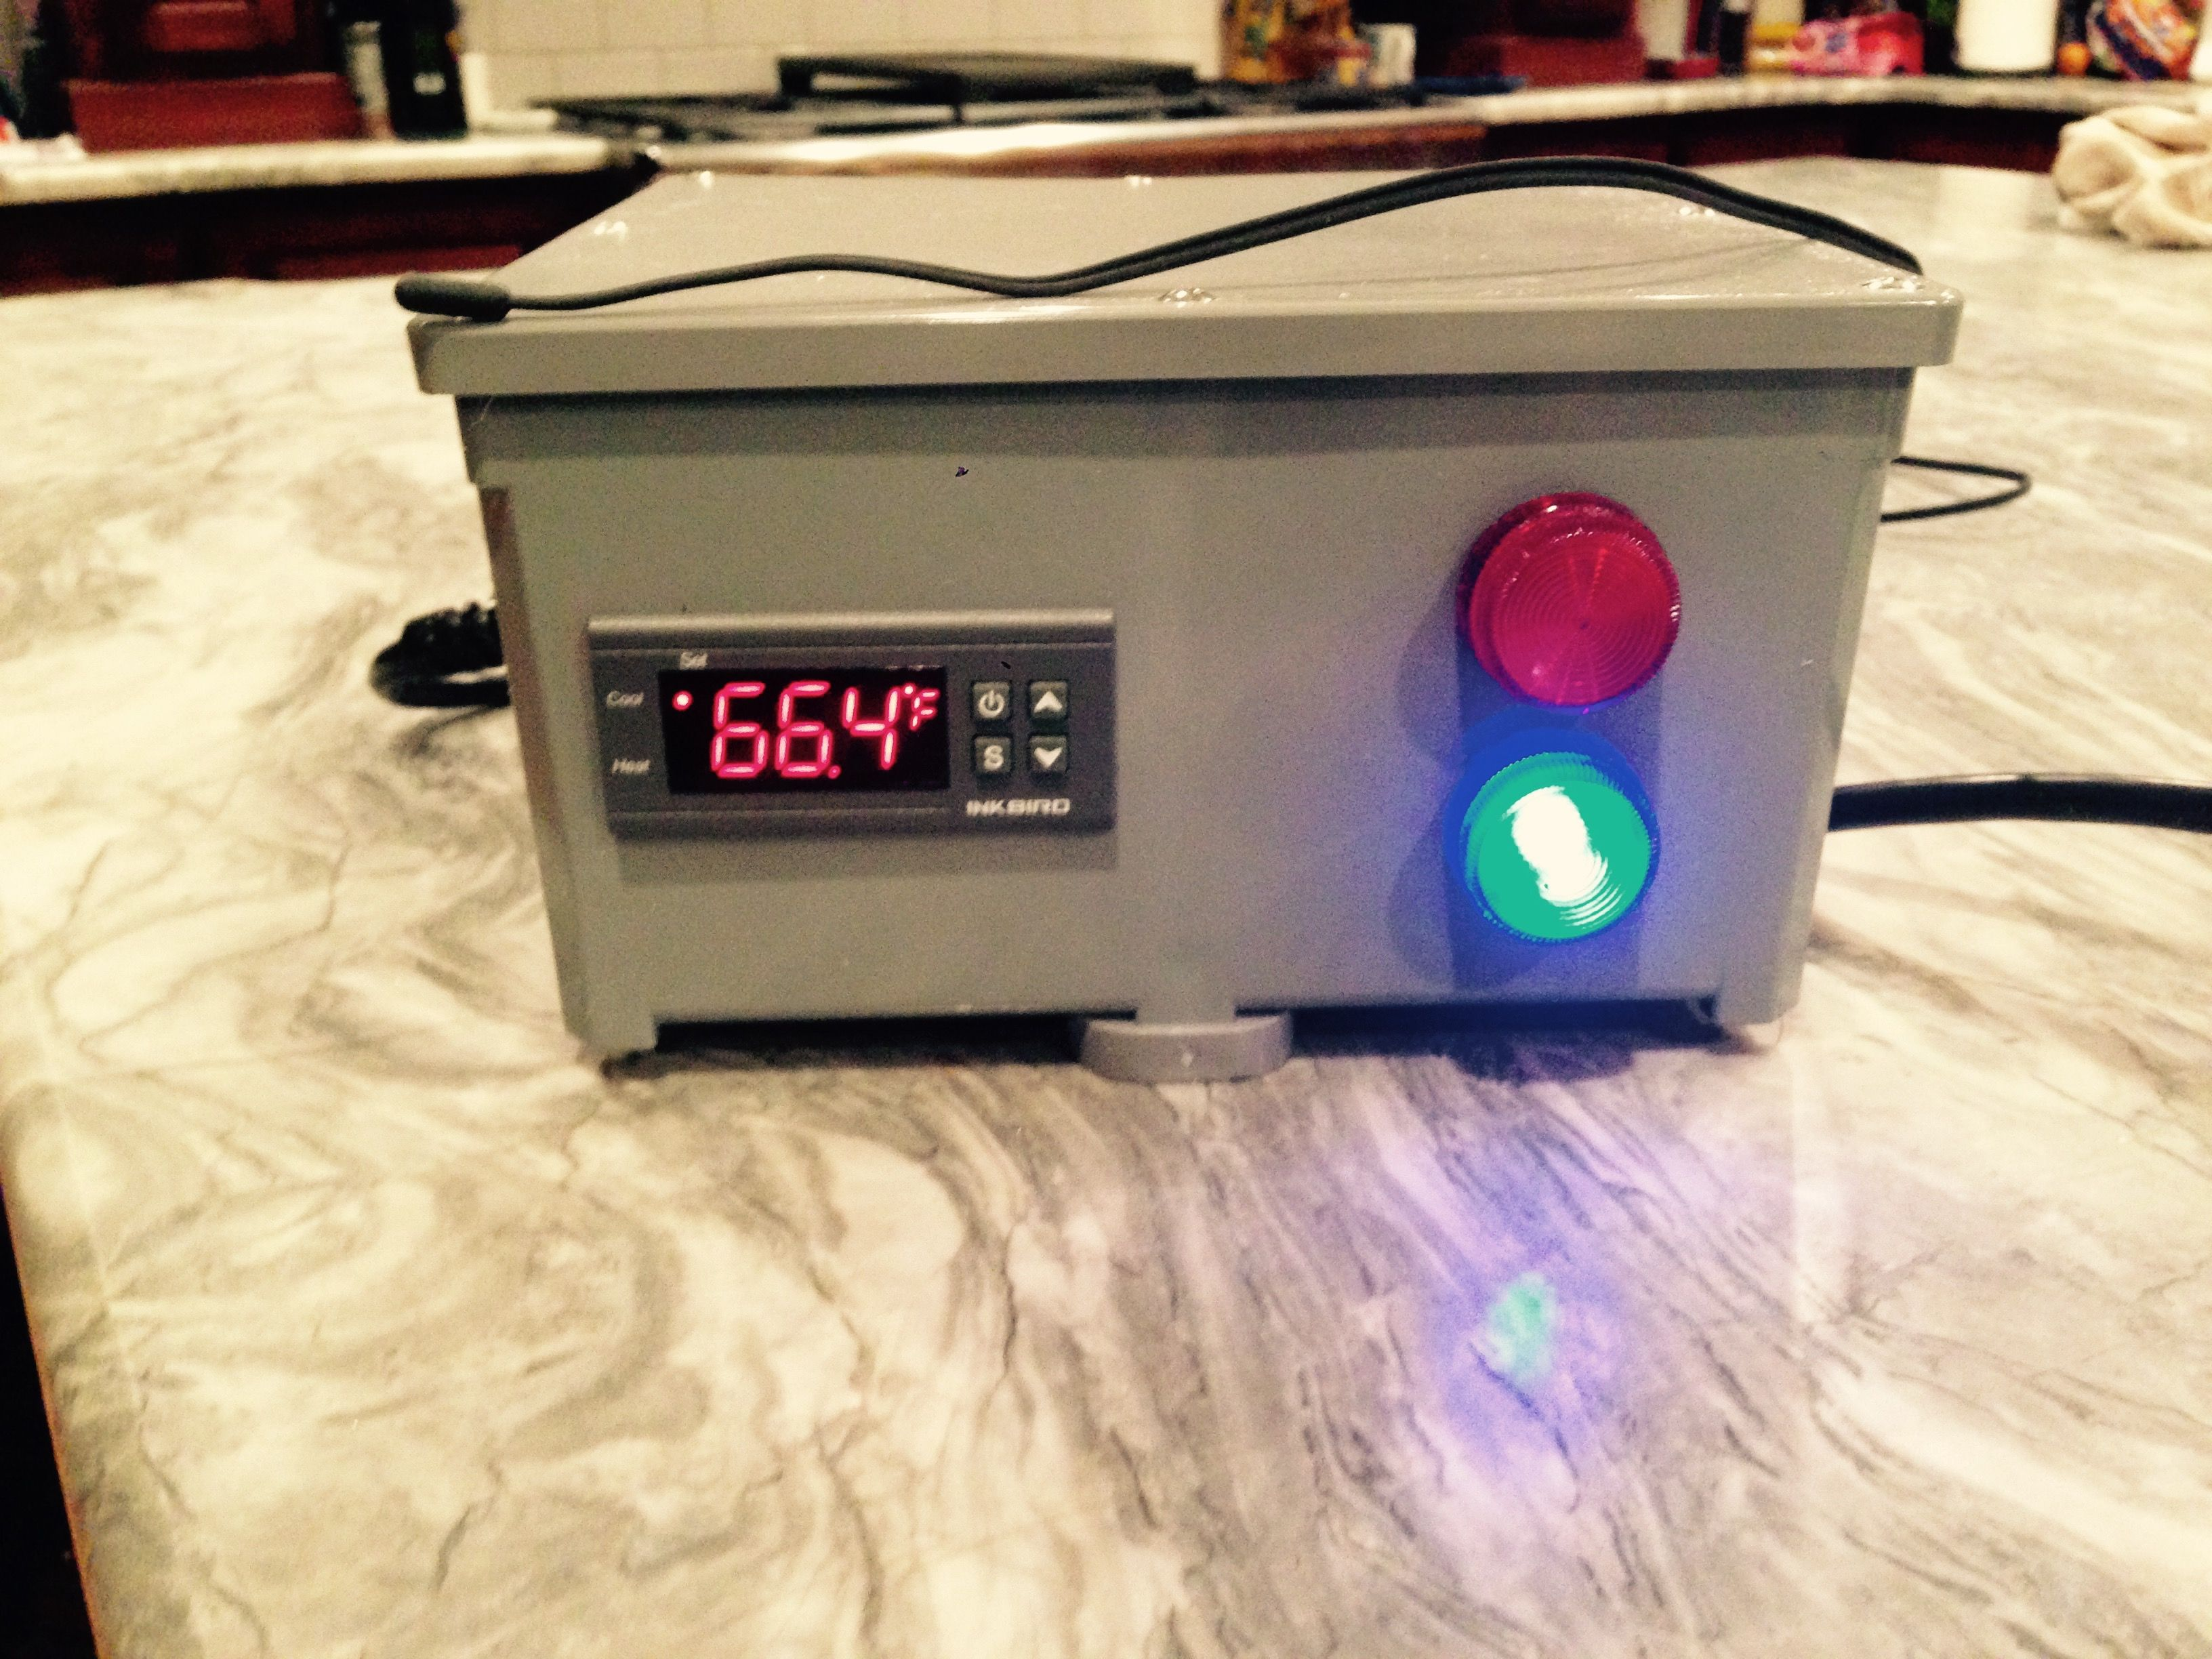 2 Stage Temperature Controller With Indicator Lights For My Brewing Help Wiring An Stc1000 Homebrewing Fermenter